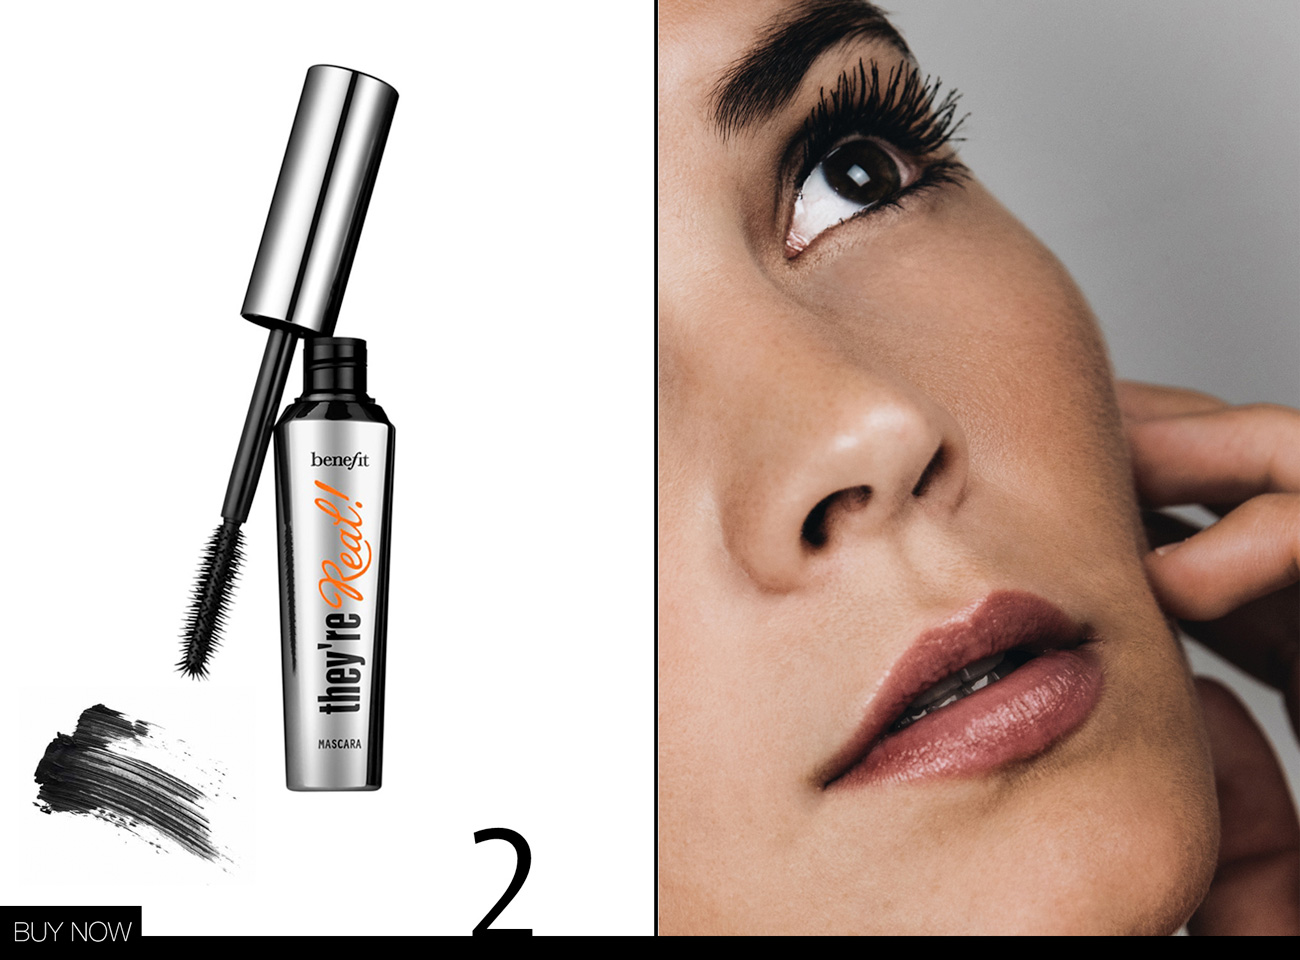 Top 5 Die Besten Volumen Mascaras Fur Volle Wimpern